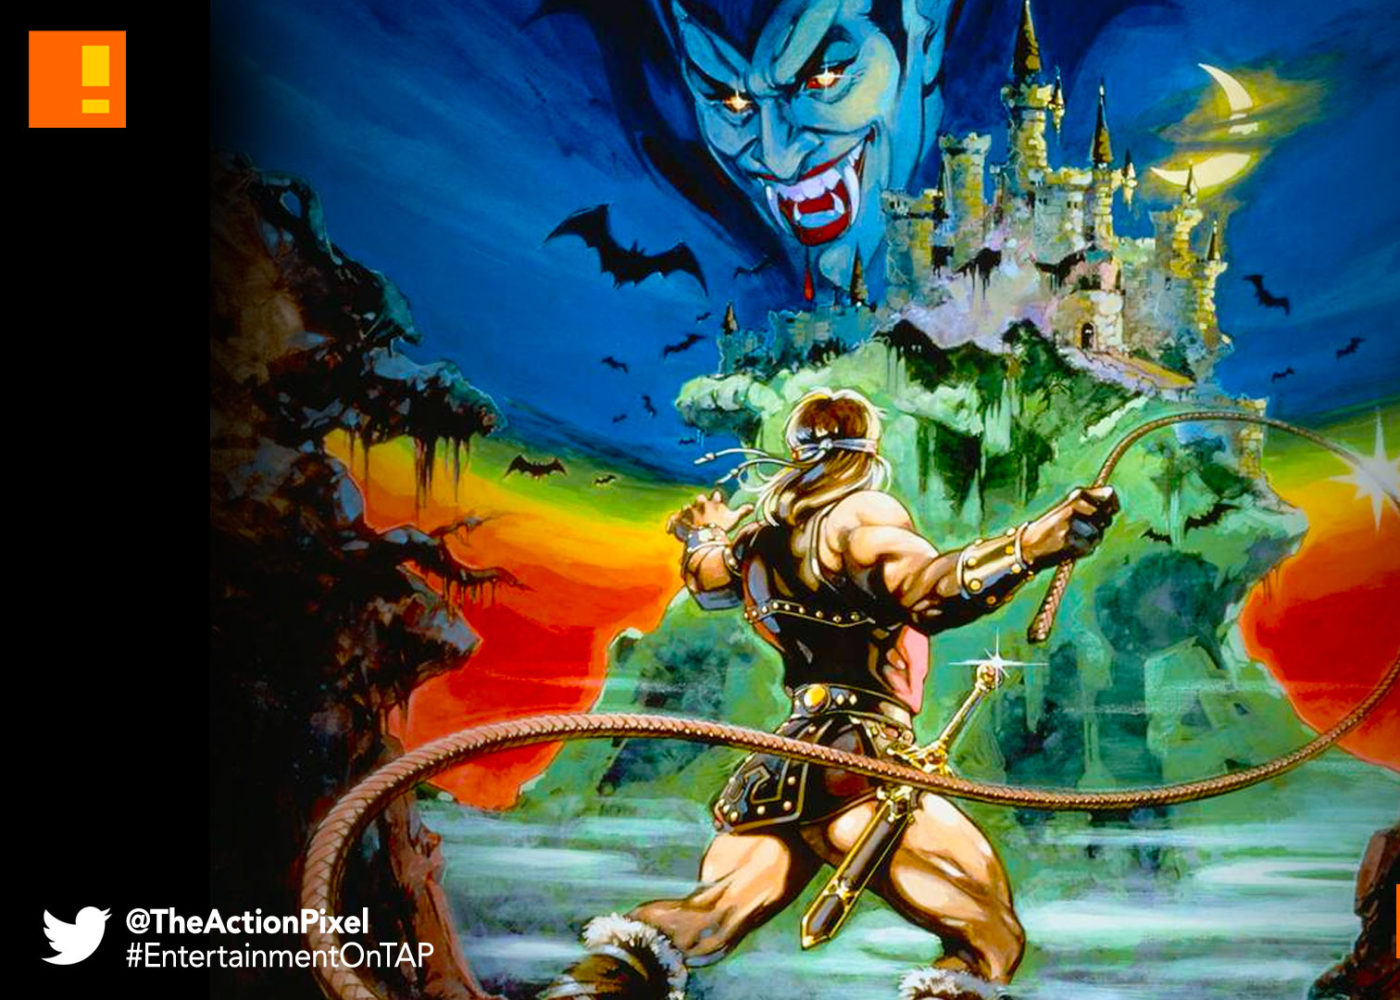 castlevania, the action pixel, adventure time, fred seibert, nickelodeon, entertainment on tap,